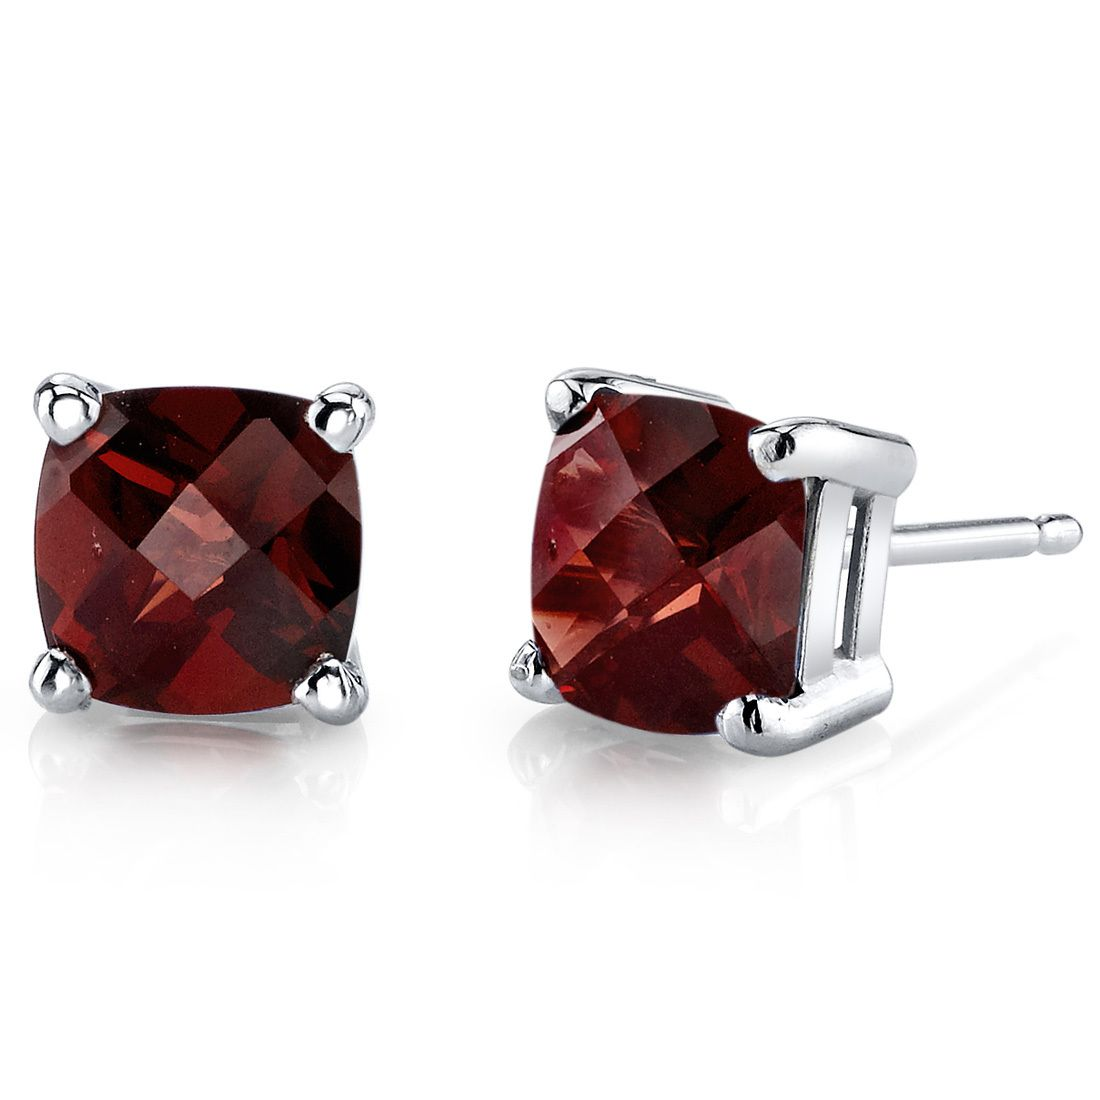 Women's 14k White Gold Cushion Cut Garnet Stud Earrings. BUY NOW AND SAVE! Use Promo Code Pin9175 AND SAVE 15% ON YOUR ENTIRE ORDER!